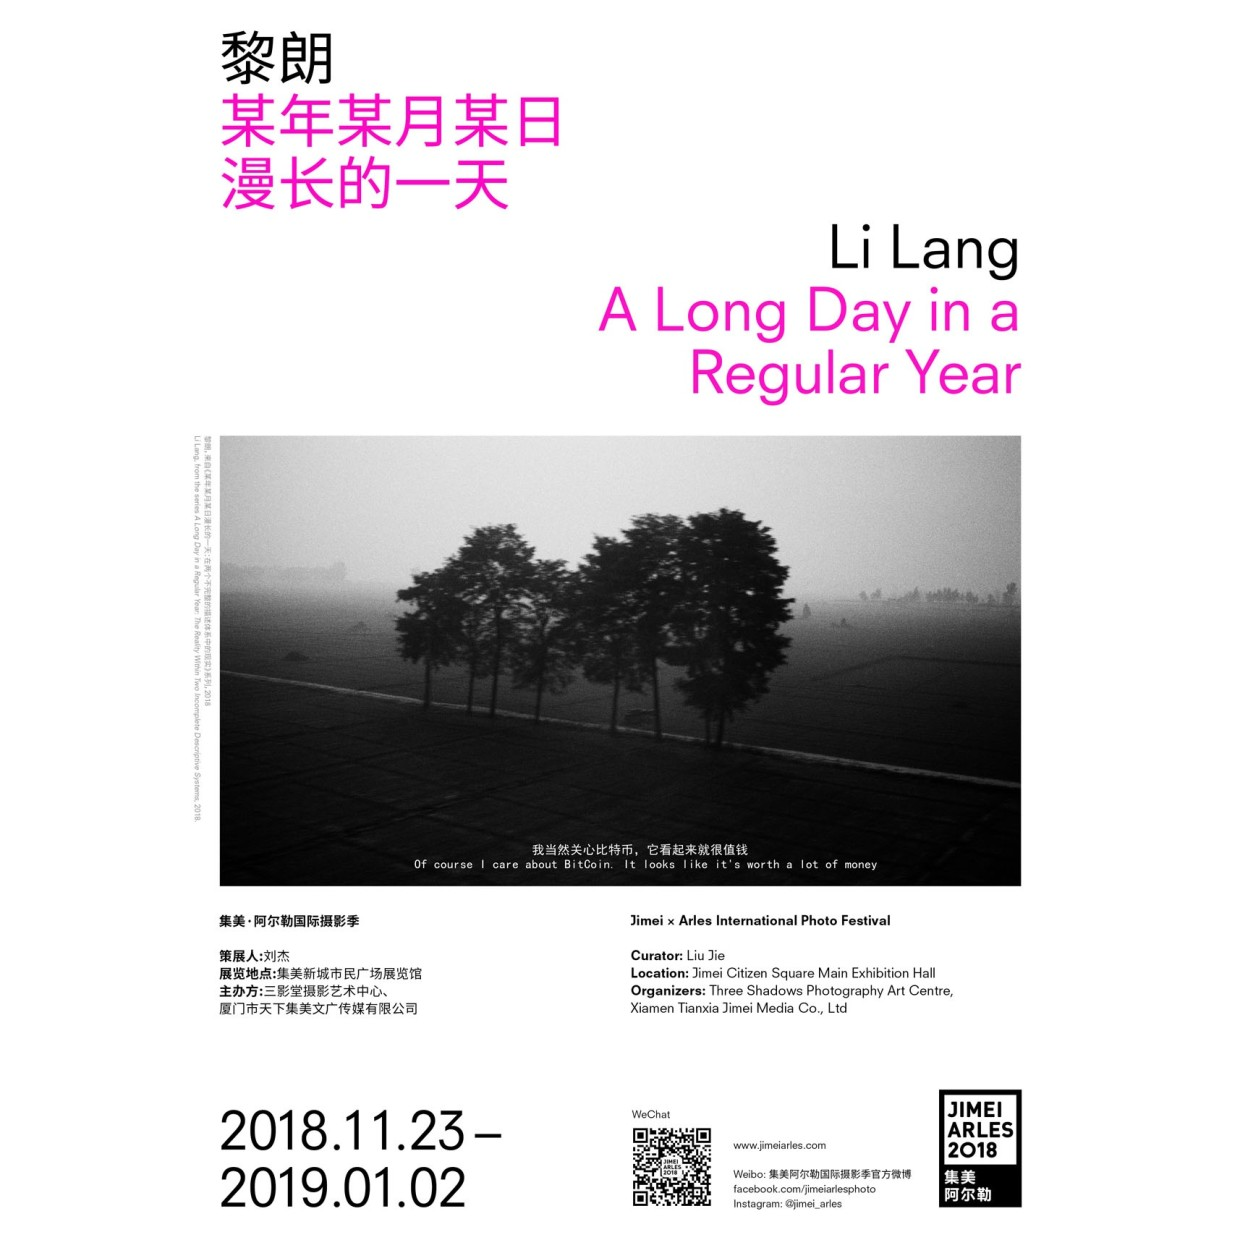 LI LANG A LONG DAY IN A REGULAR YEAR CURATED BY LIU JIE The work, A Long Day in a...